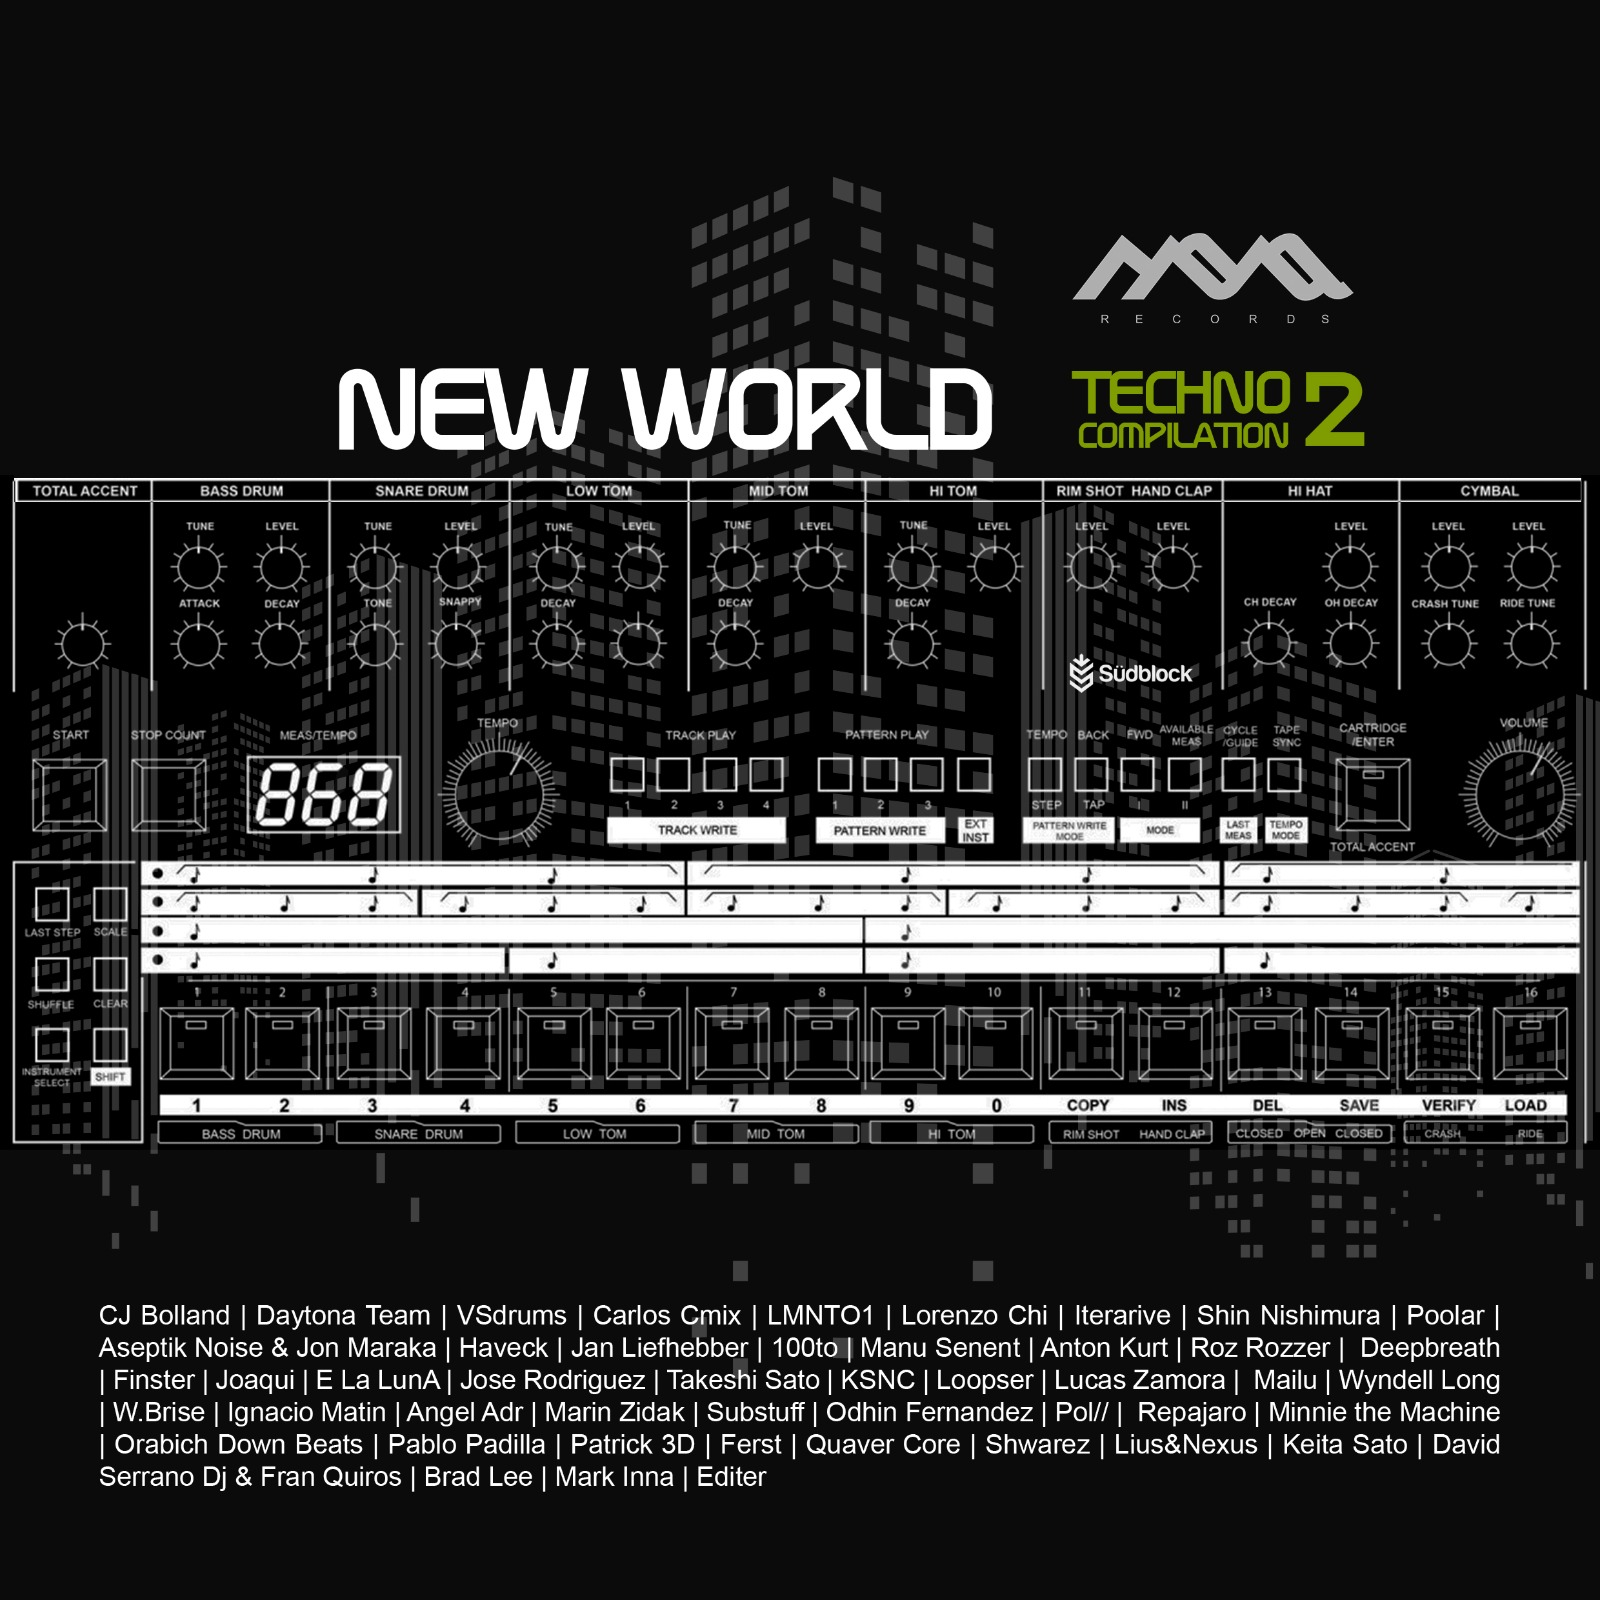 Mona Records presenta 'New World Techno Vol.2 Compilation' d01cdfe6 7c3e 4dec 94db 8978f9e5f8d3